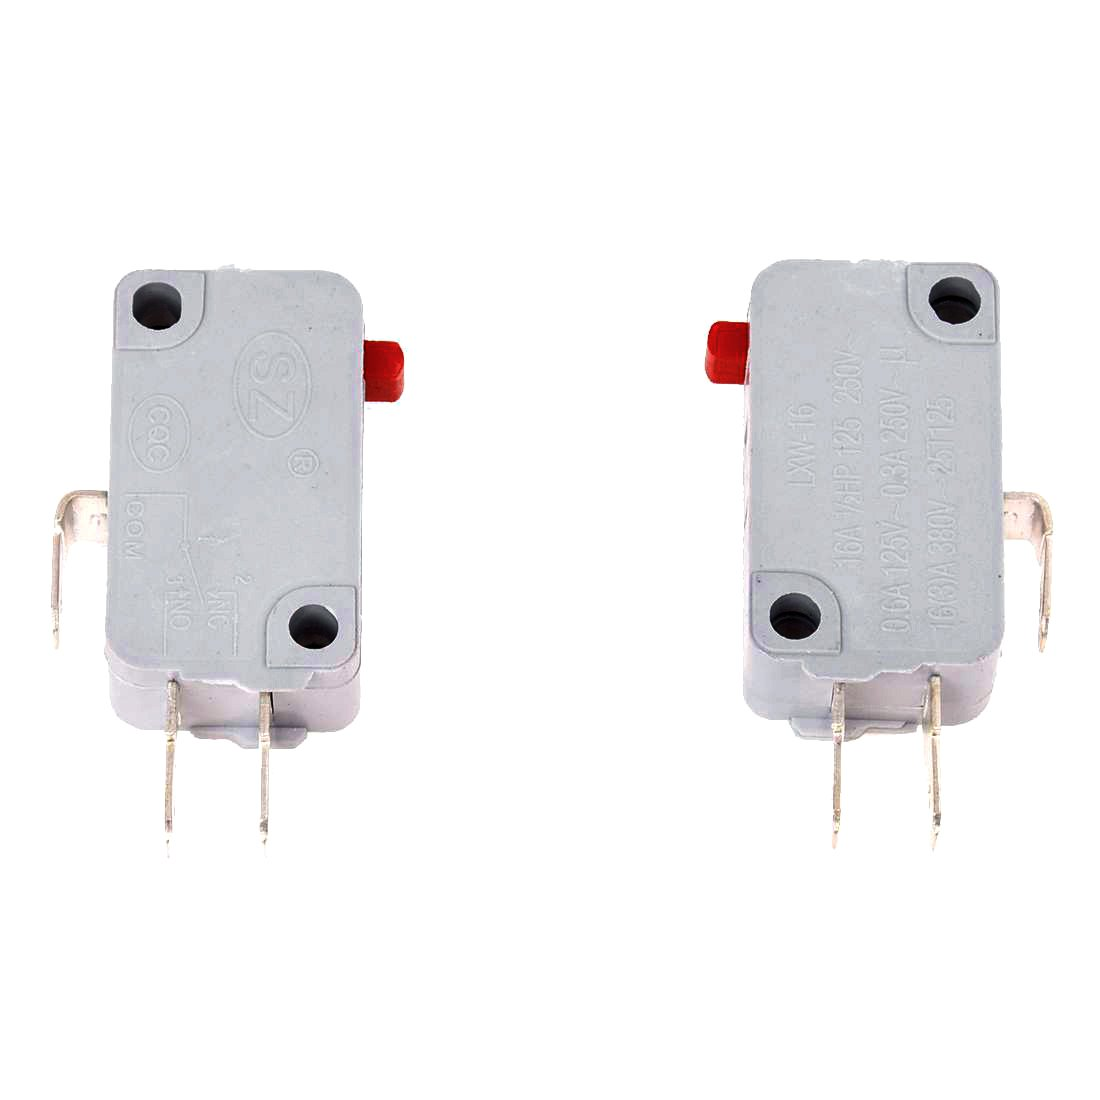 TOOGOO(R) 250VAC 16A SPDT 1NO 1NC 3P Limit Microswitch for Rice Cooker Pack of 2